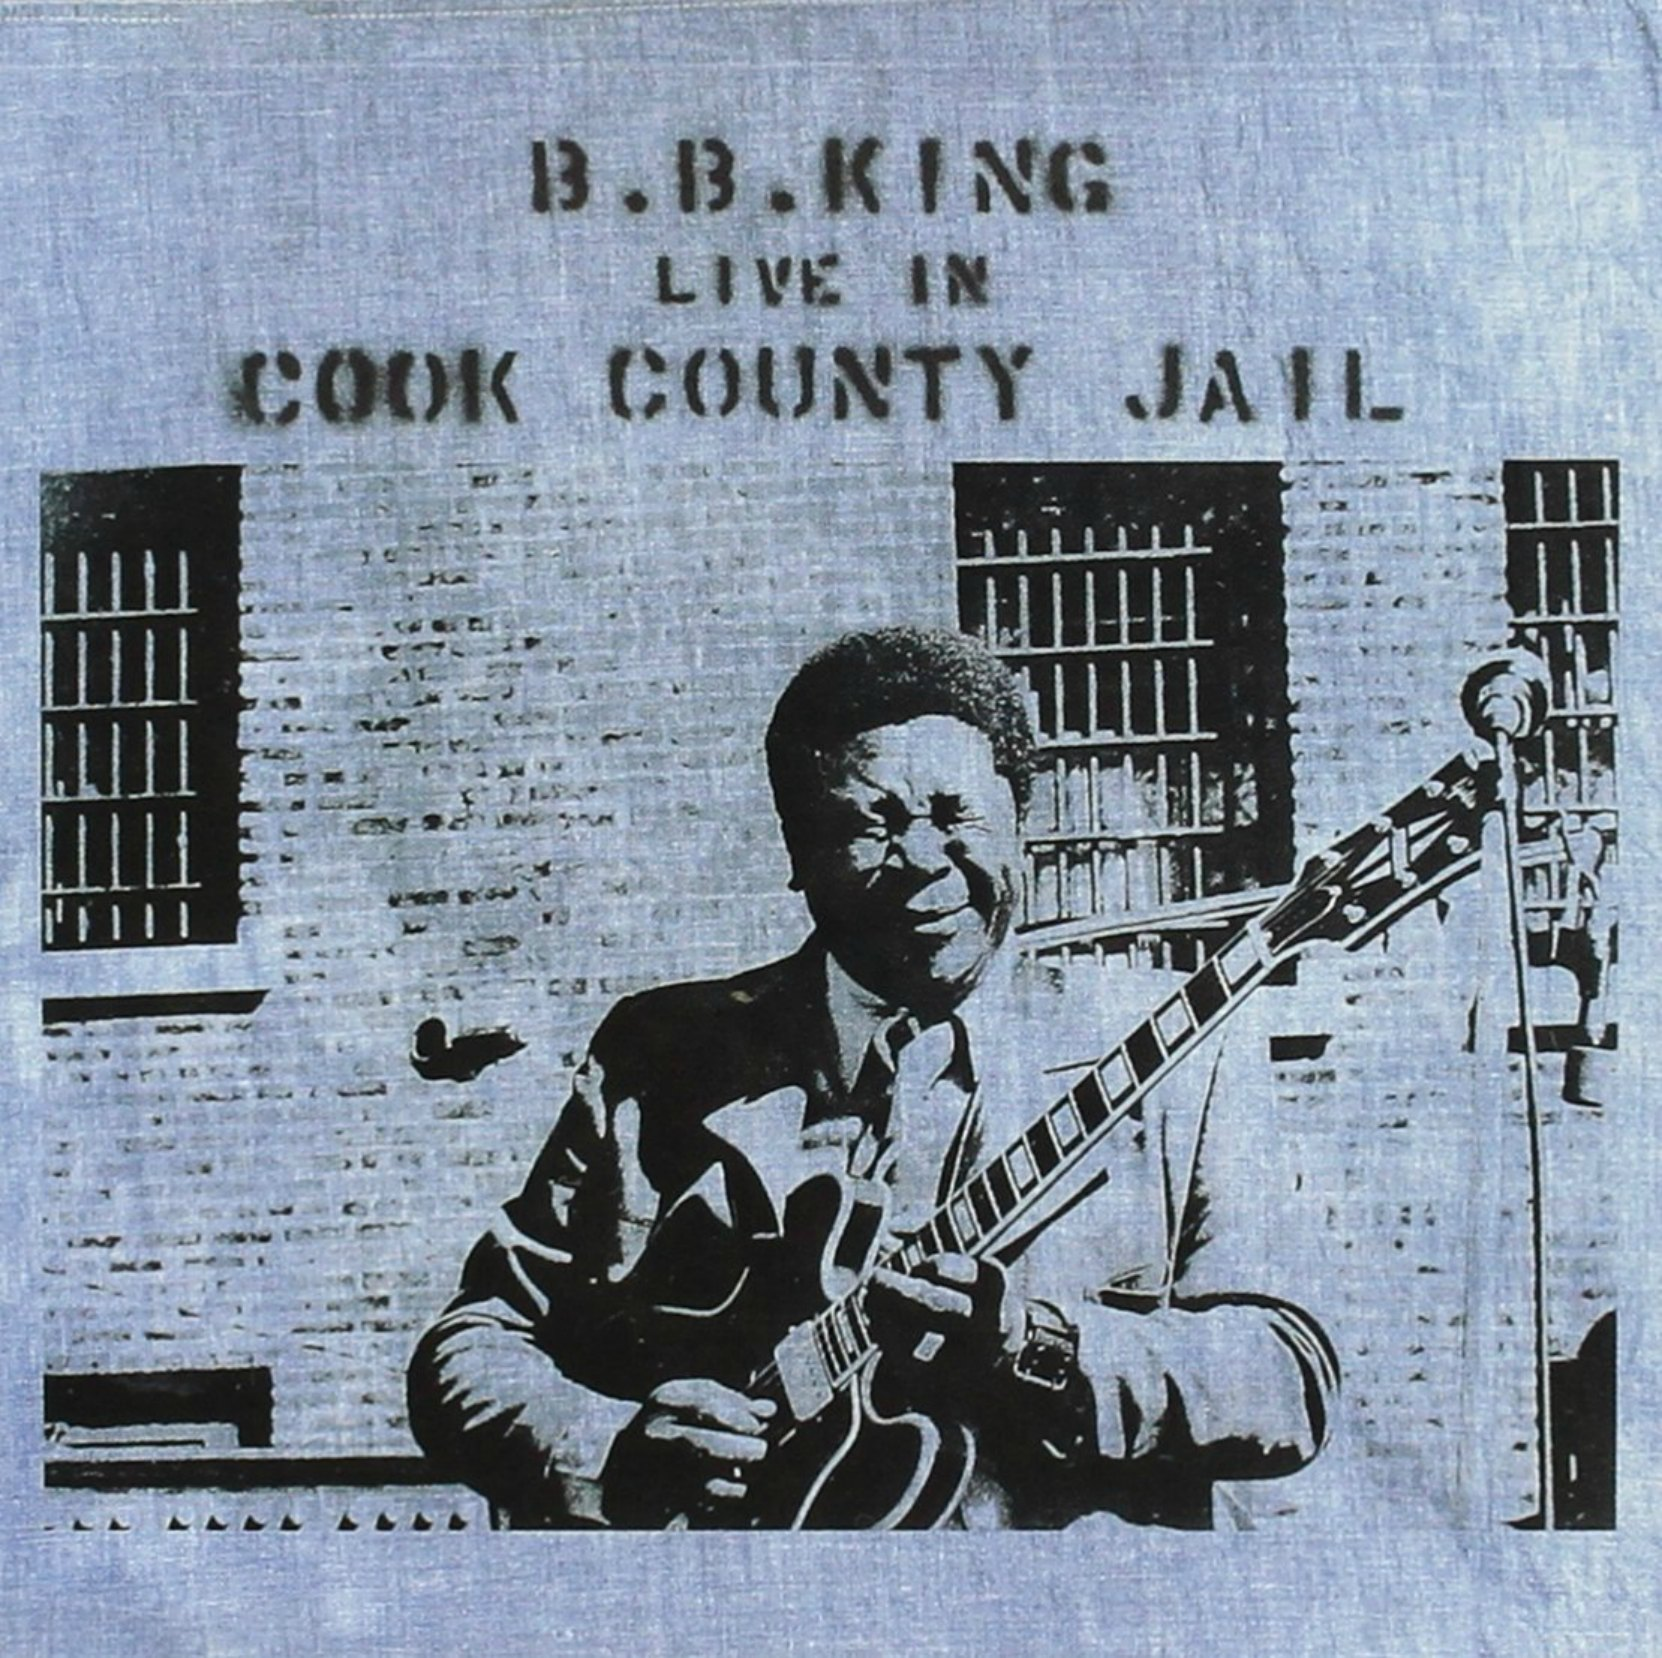 CD cover, Live In Cook County Jail by B.B. King